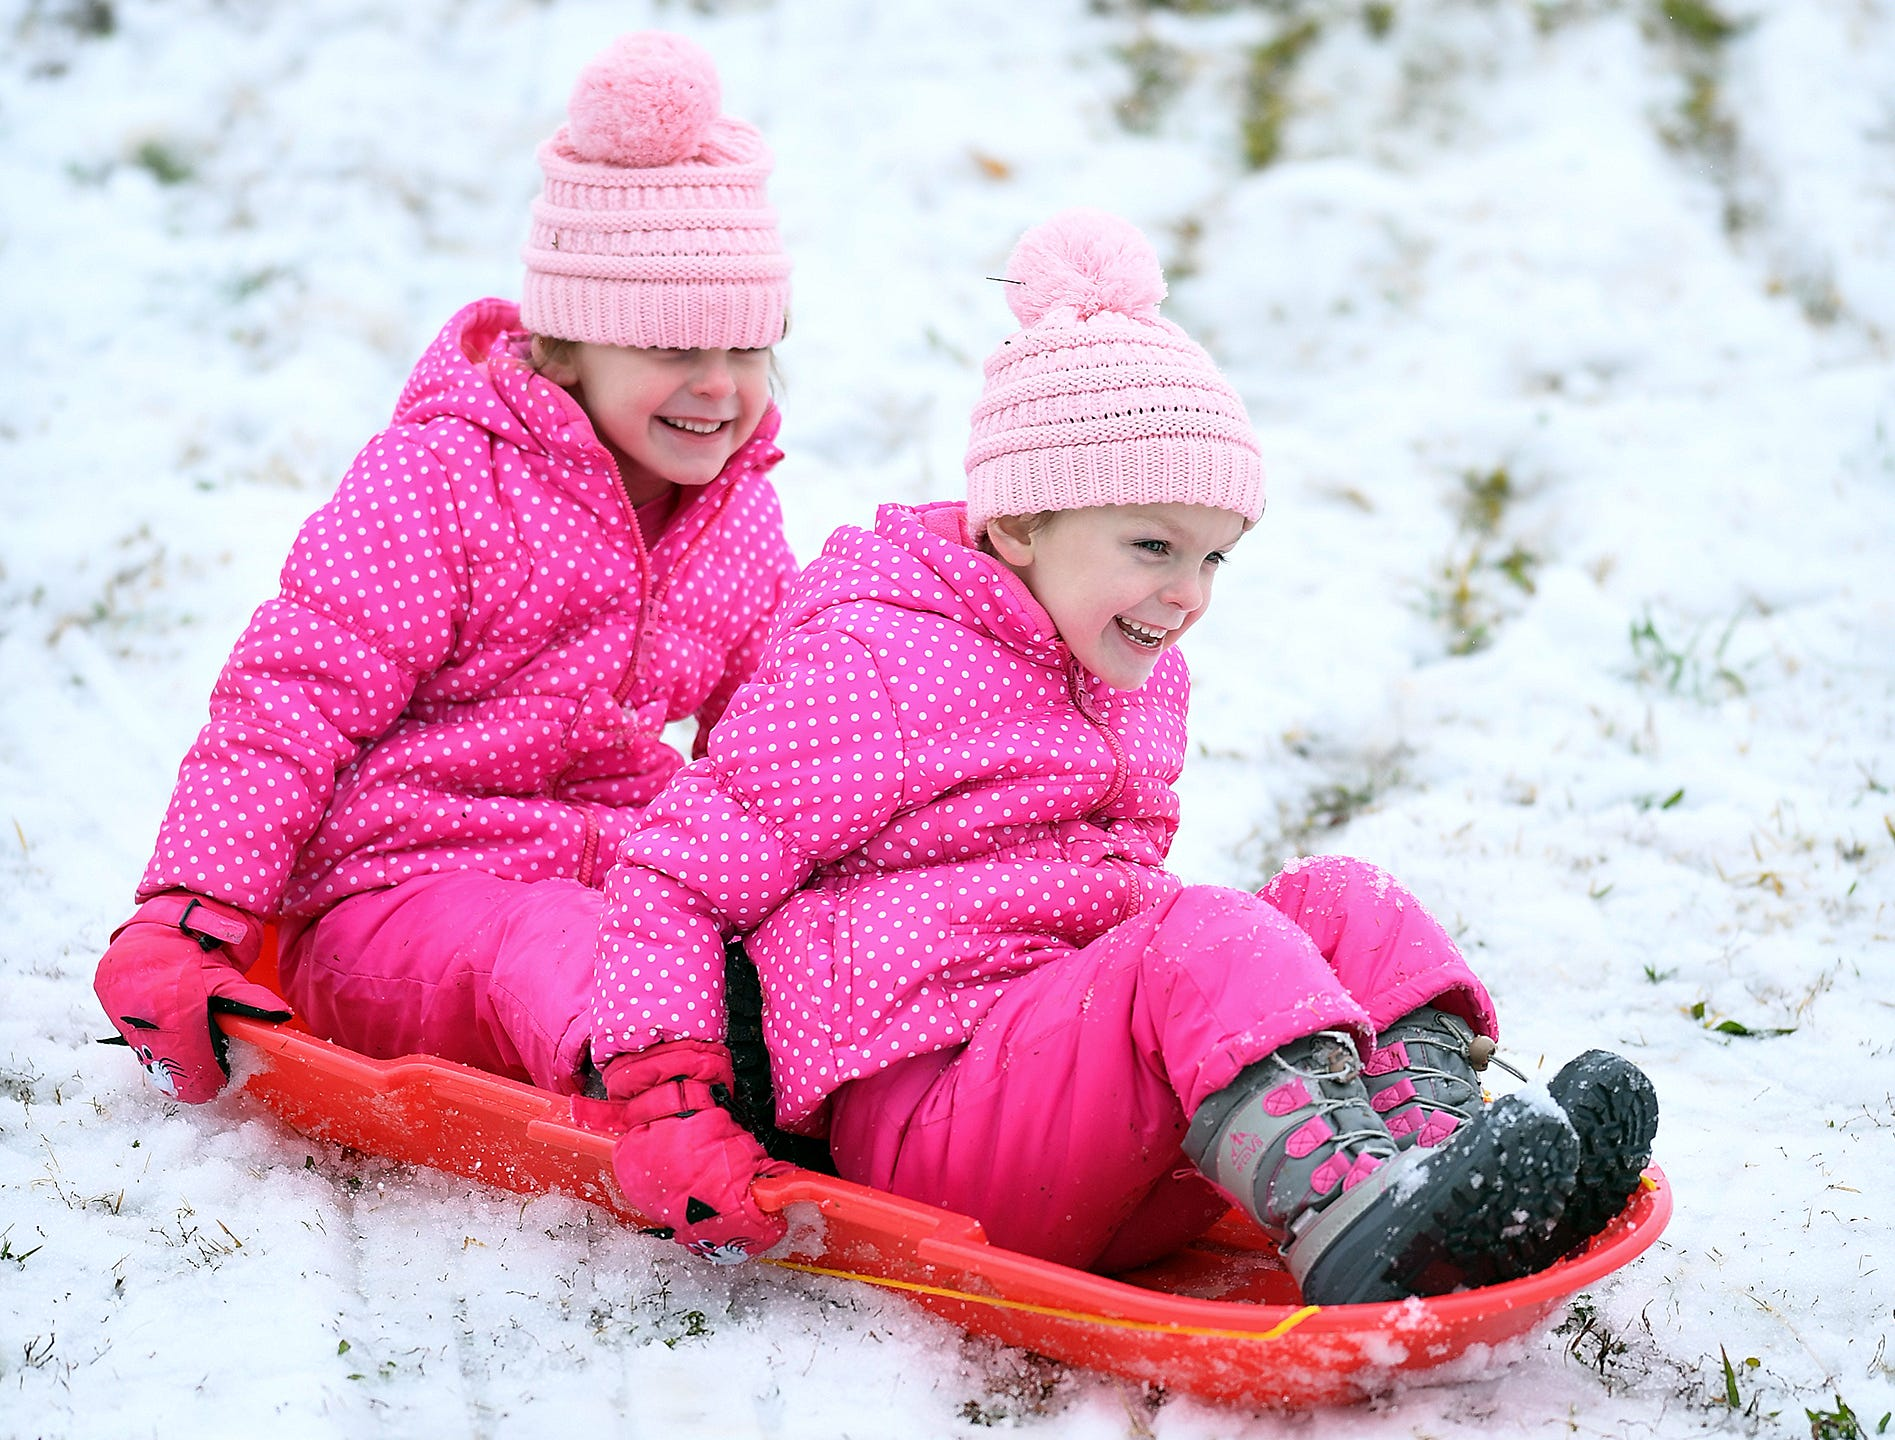 Twins Addi, front, and Britt Clinkscales sled down a hill in Belton after a layer of sleet fell early Sunday December 9, 2018.